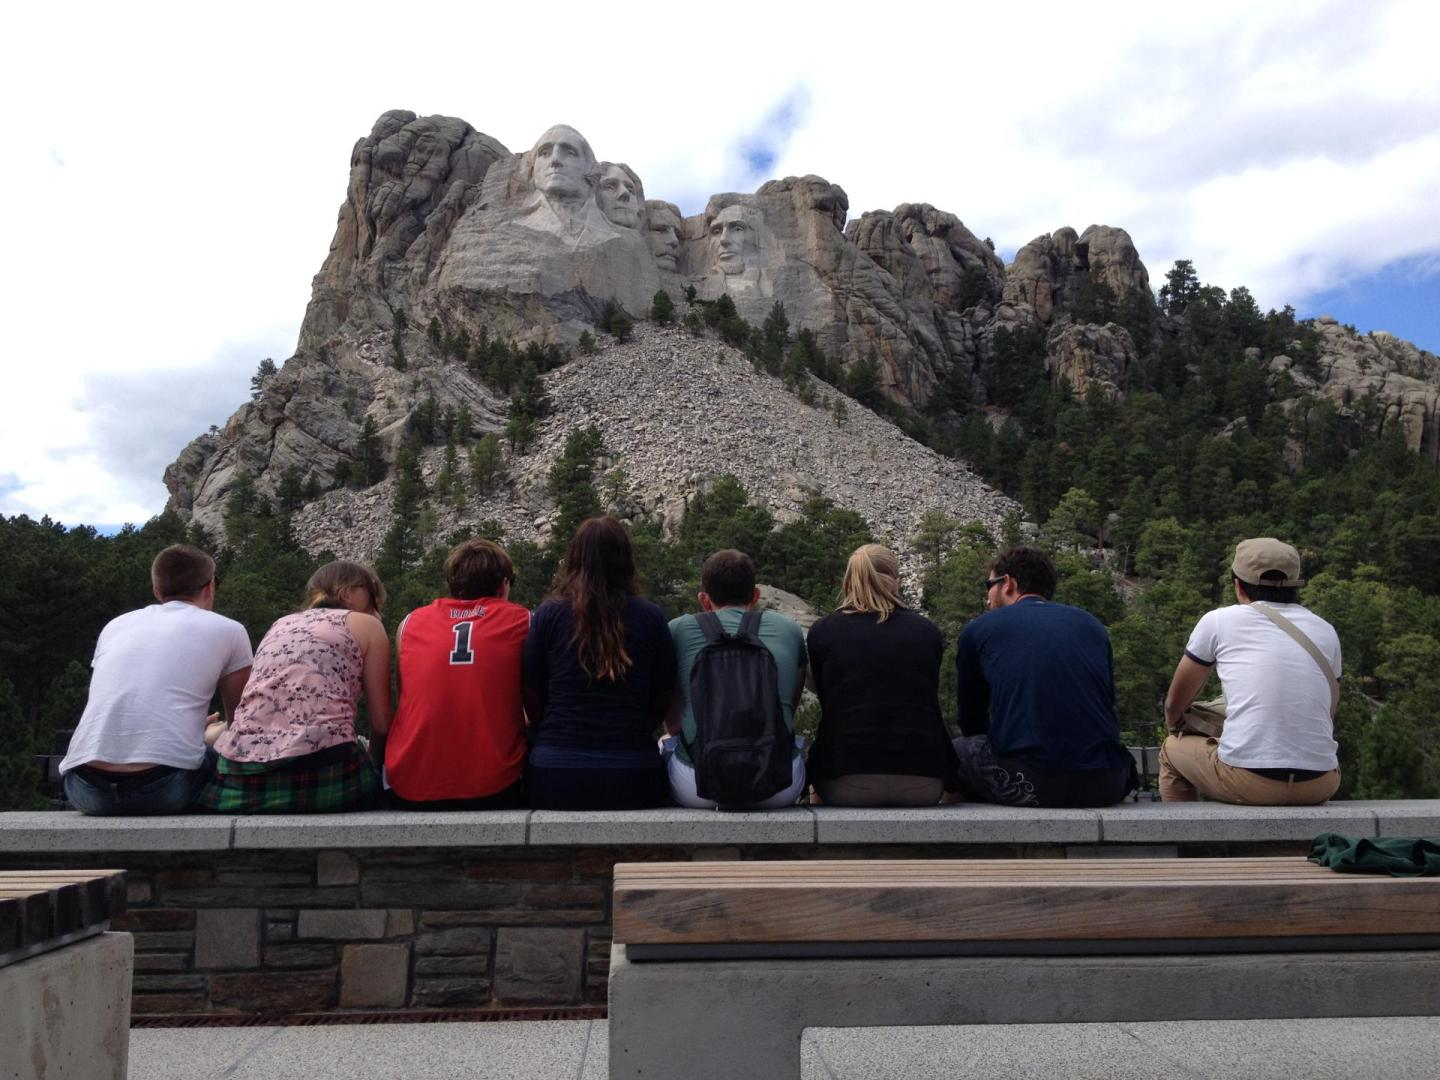 Trek America Mount Rushmore